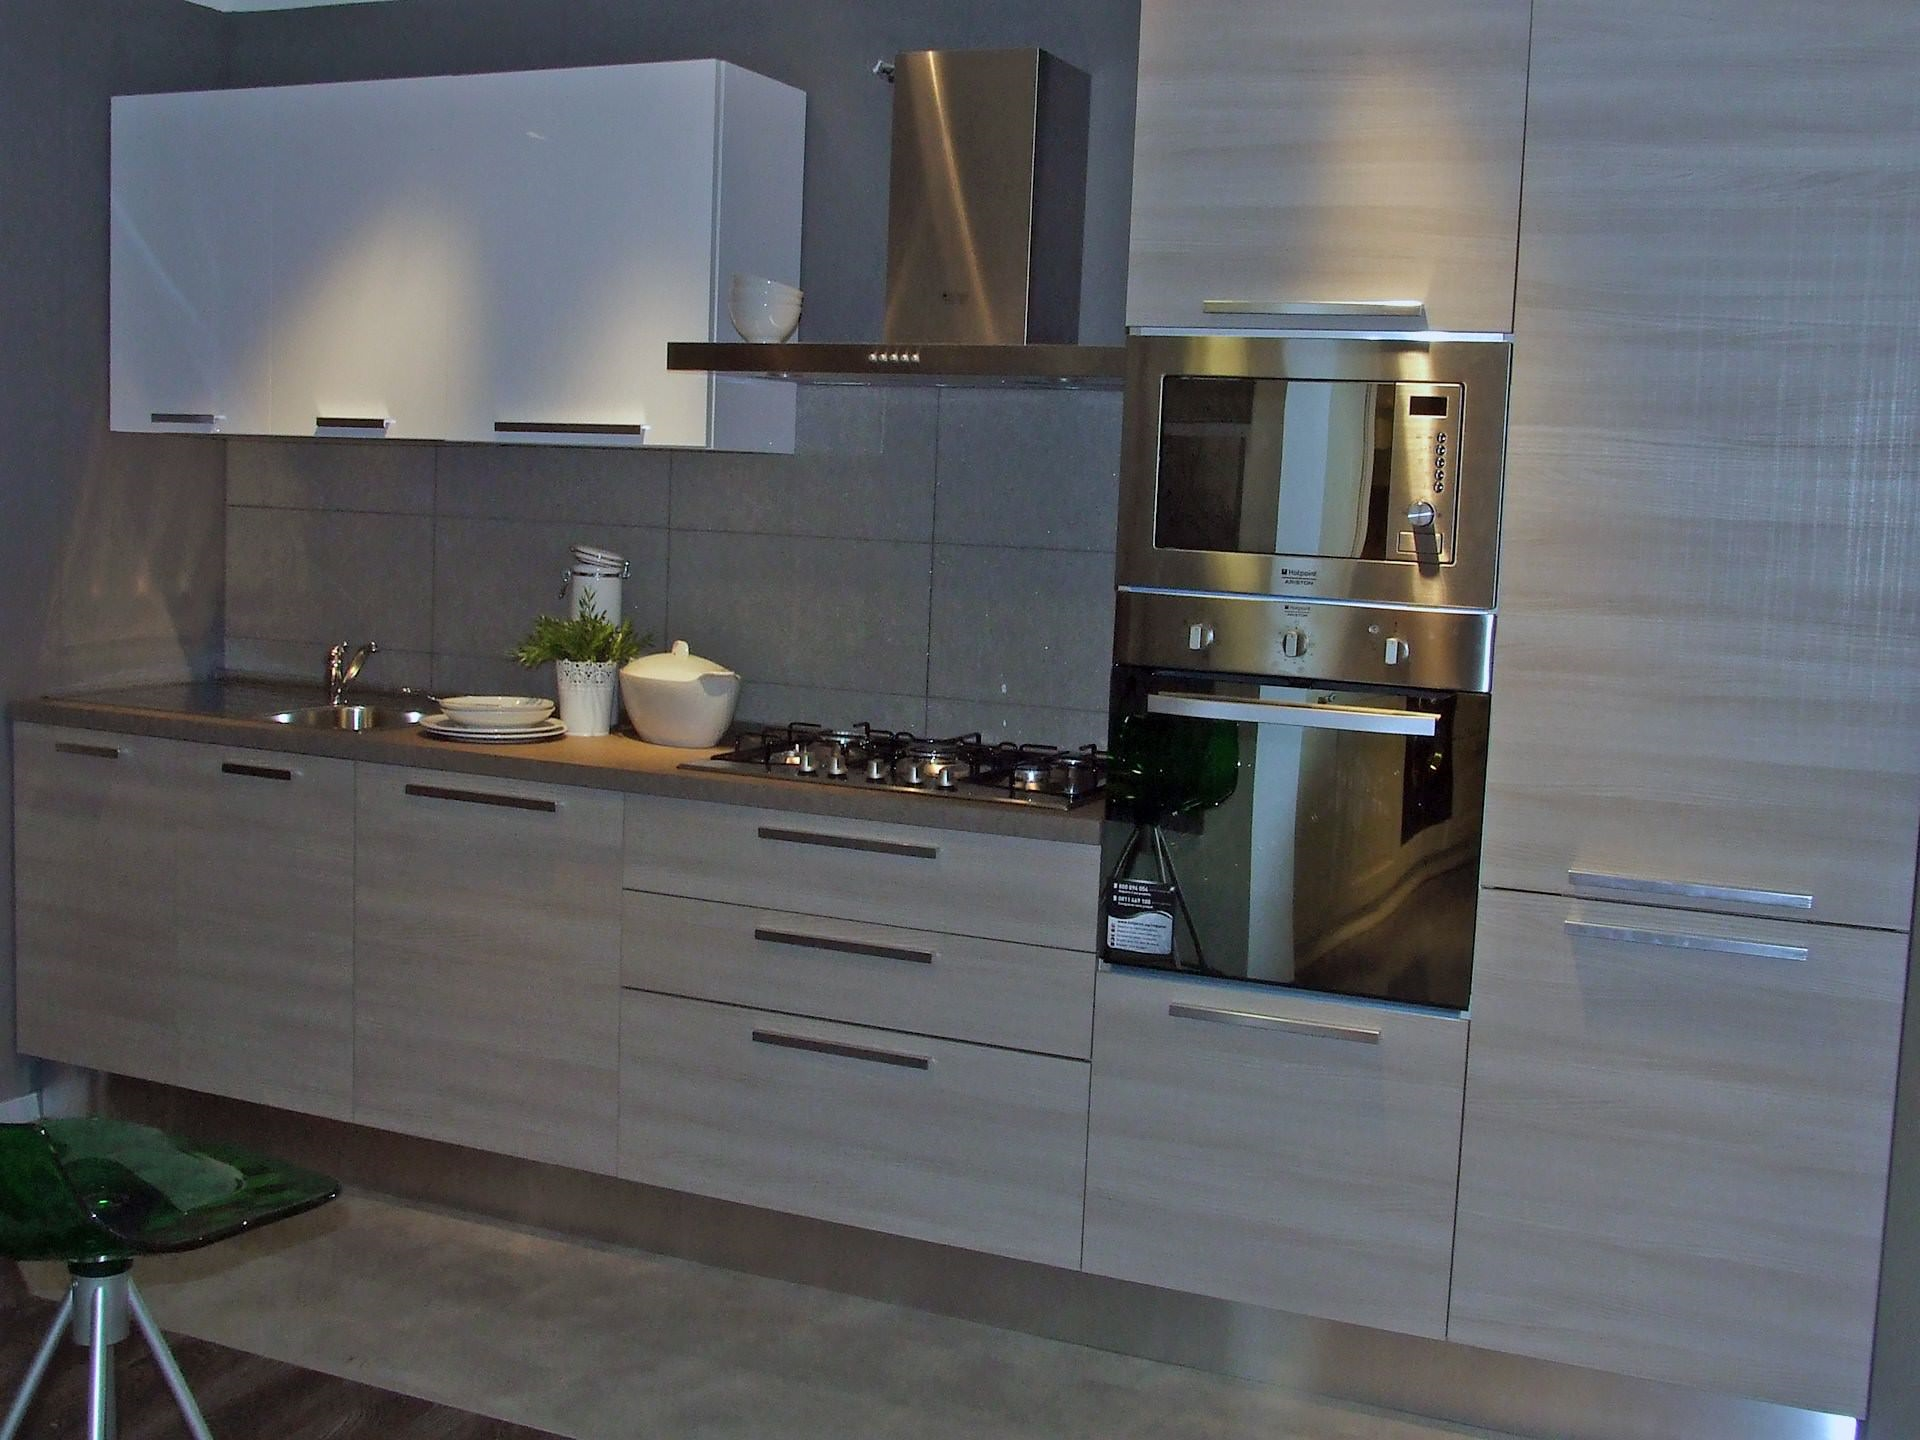 Awesome Demode Cucine Opinioni Ideas - Home Design - joygree.info